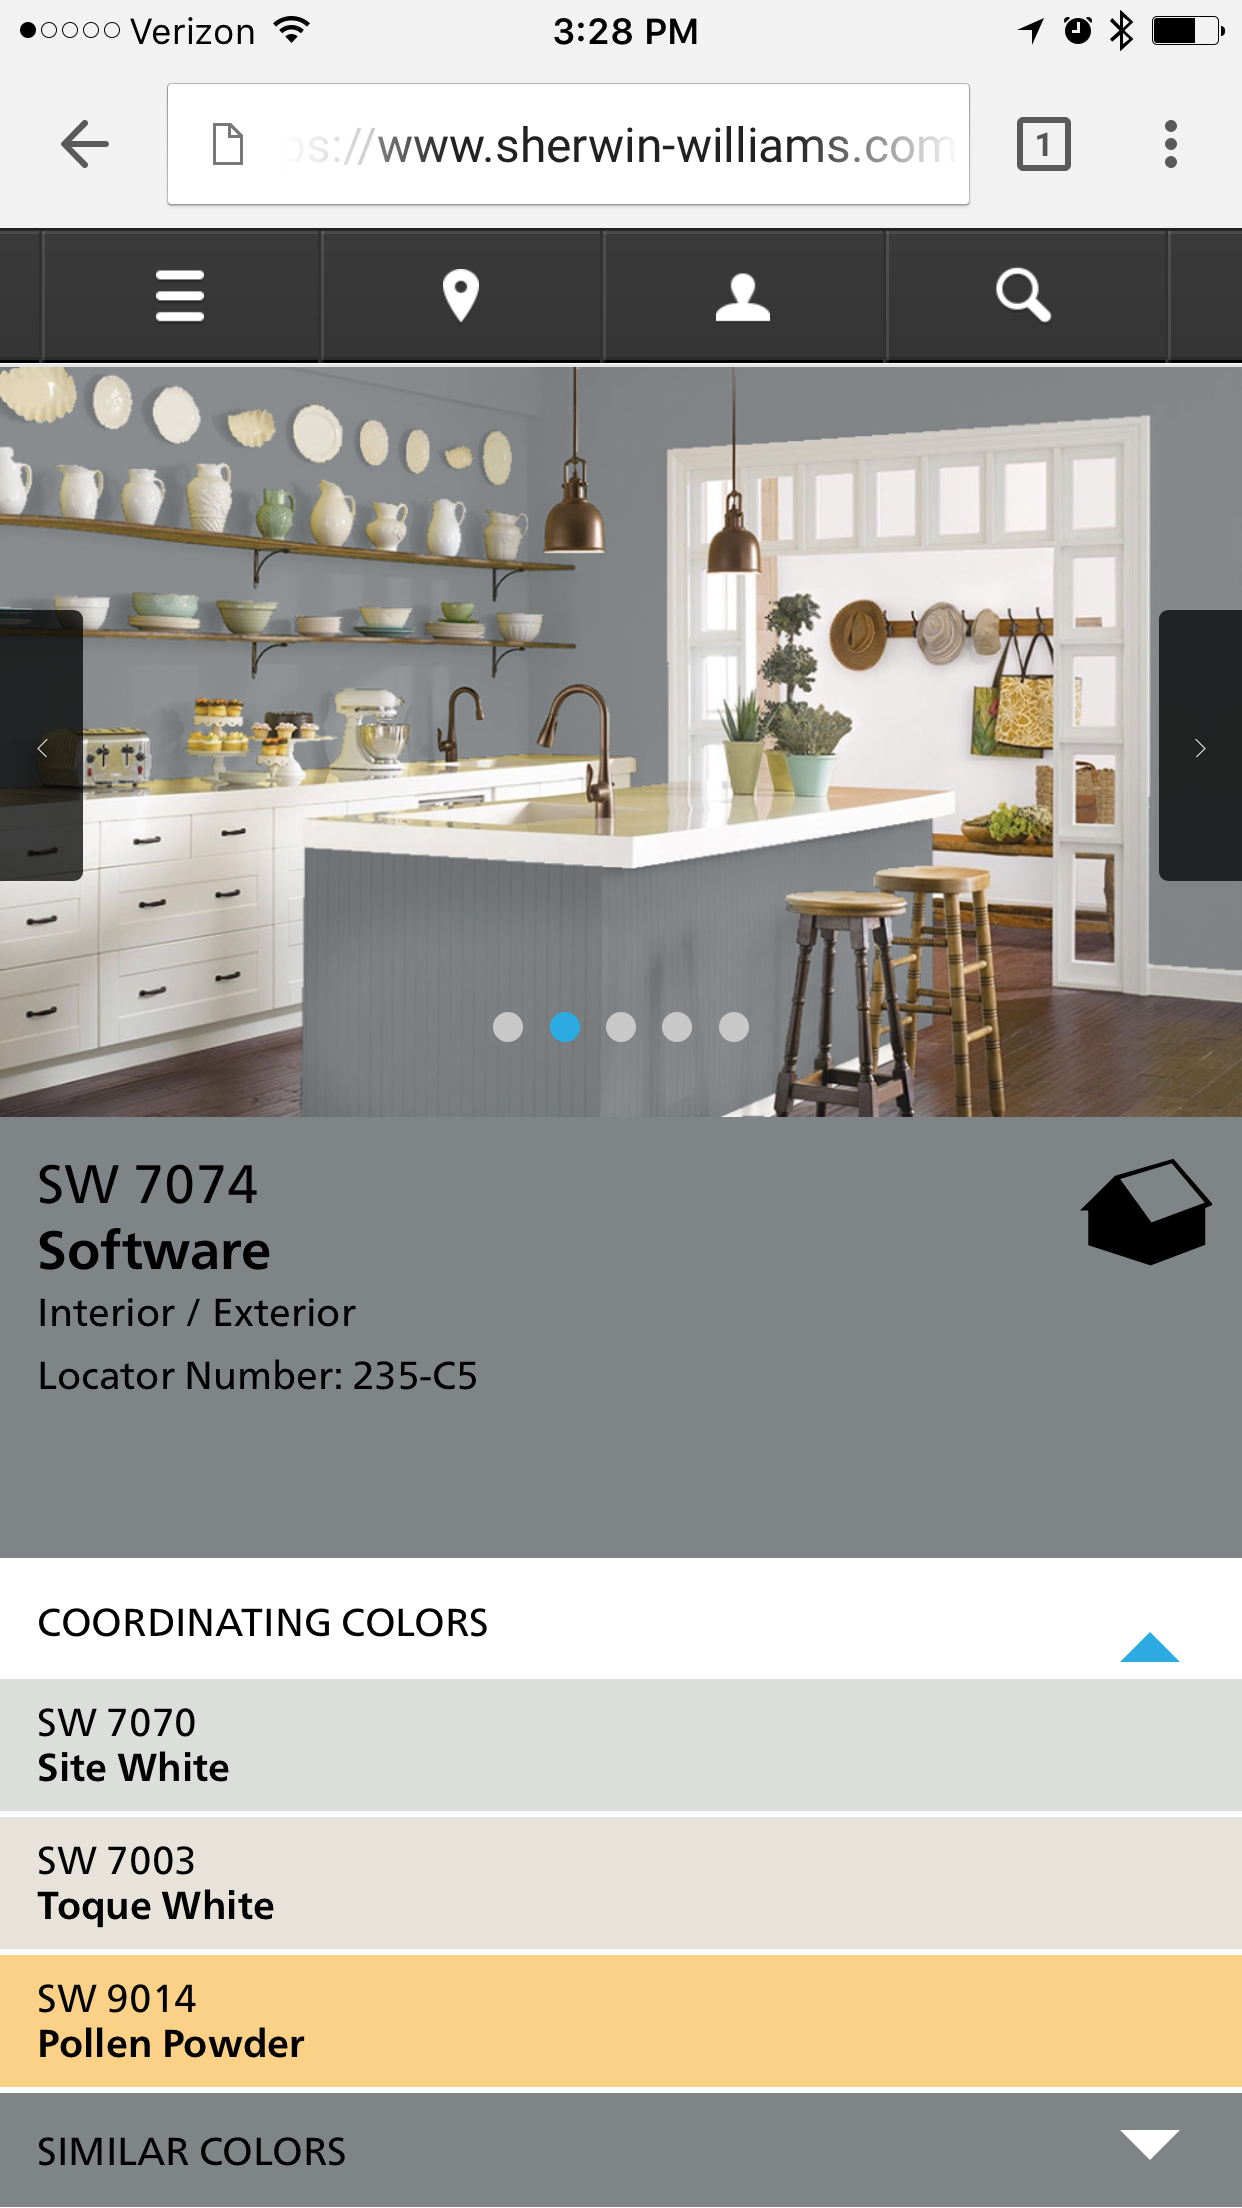 Kitchen Software Motion Sensor Faucet By Sherwin Williams Interior Design Grey Cabinets Woodland House Magazine